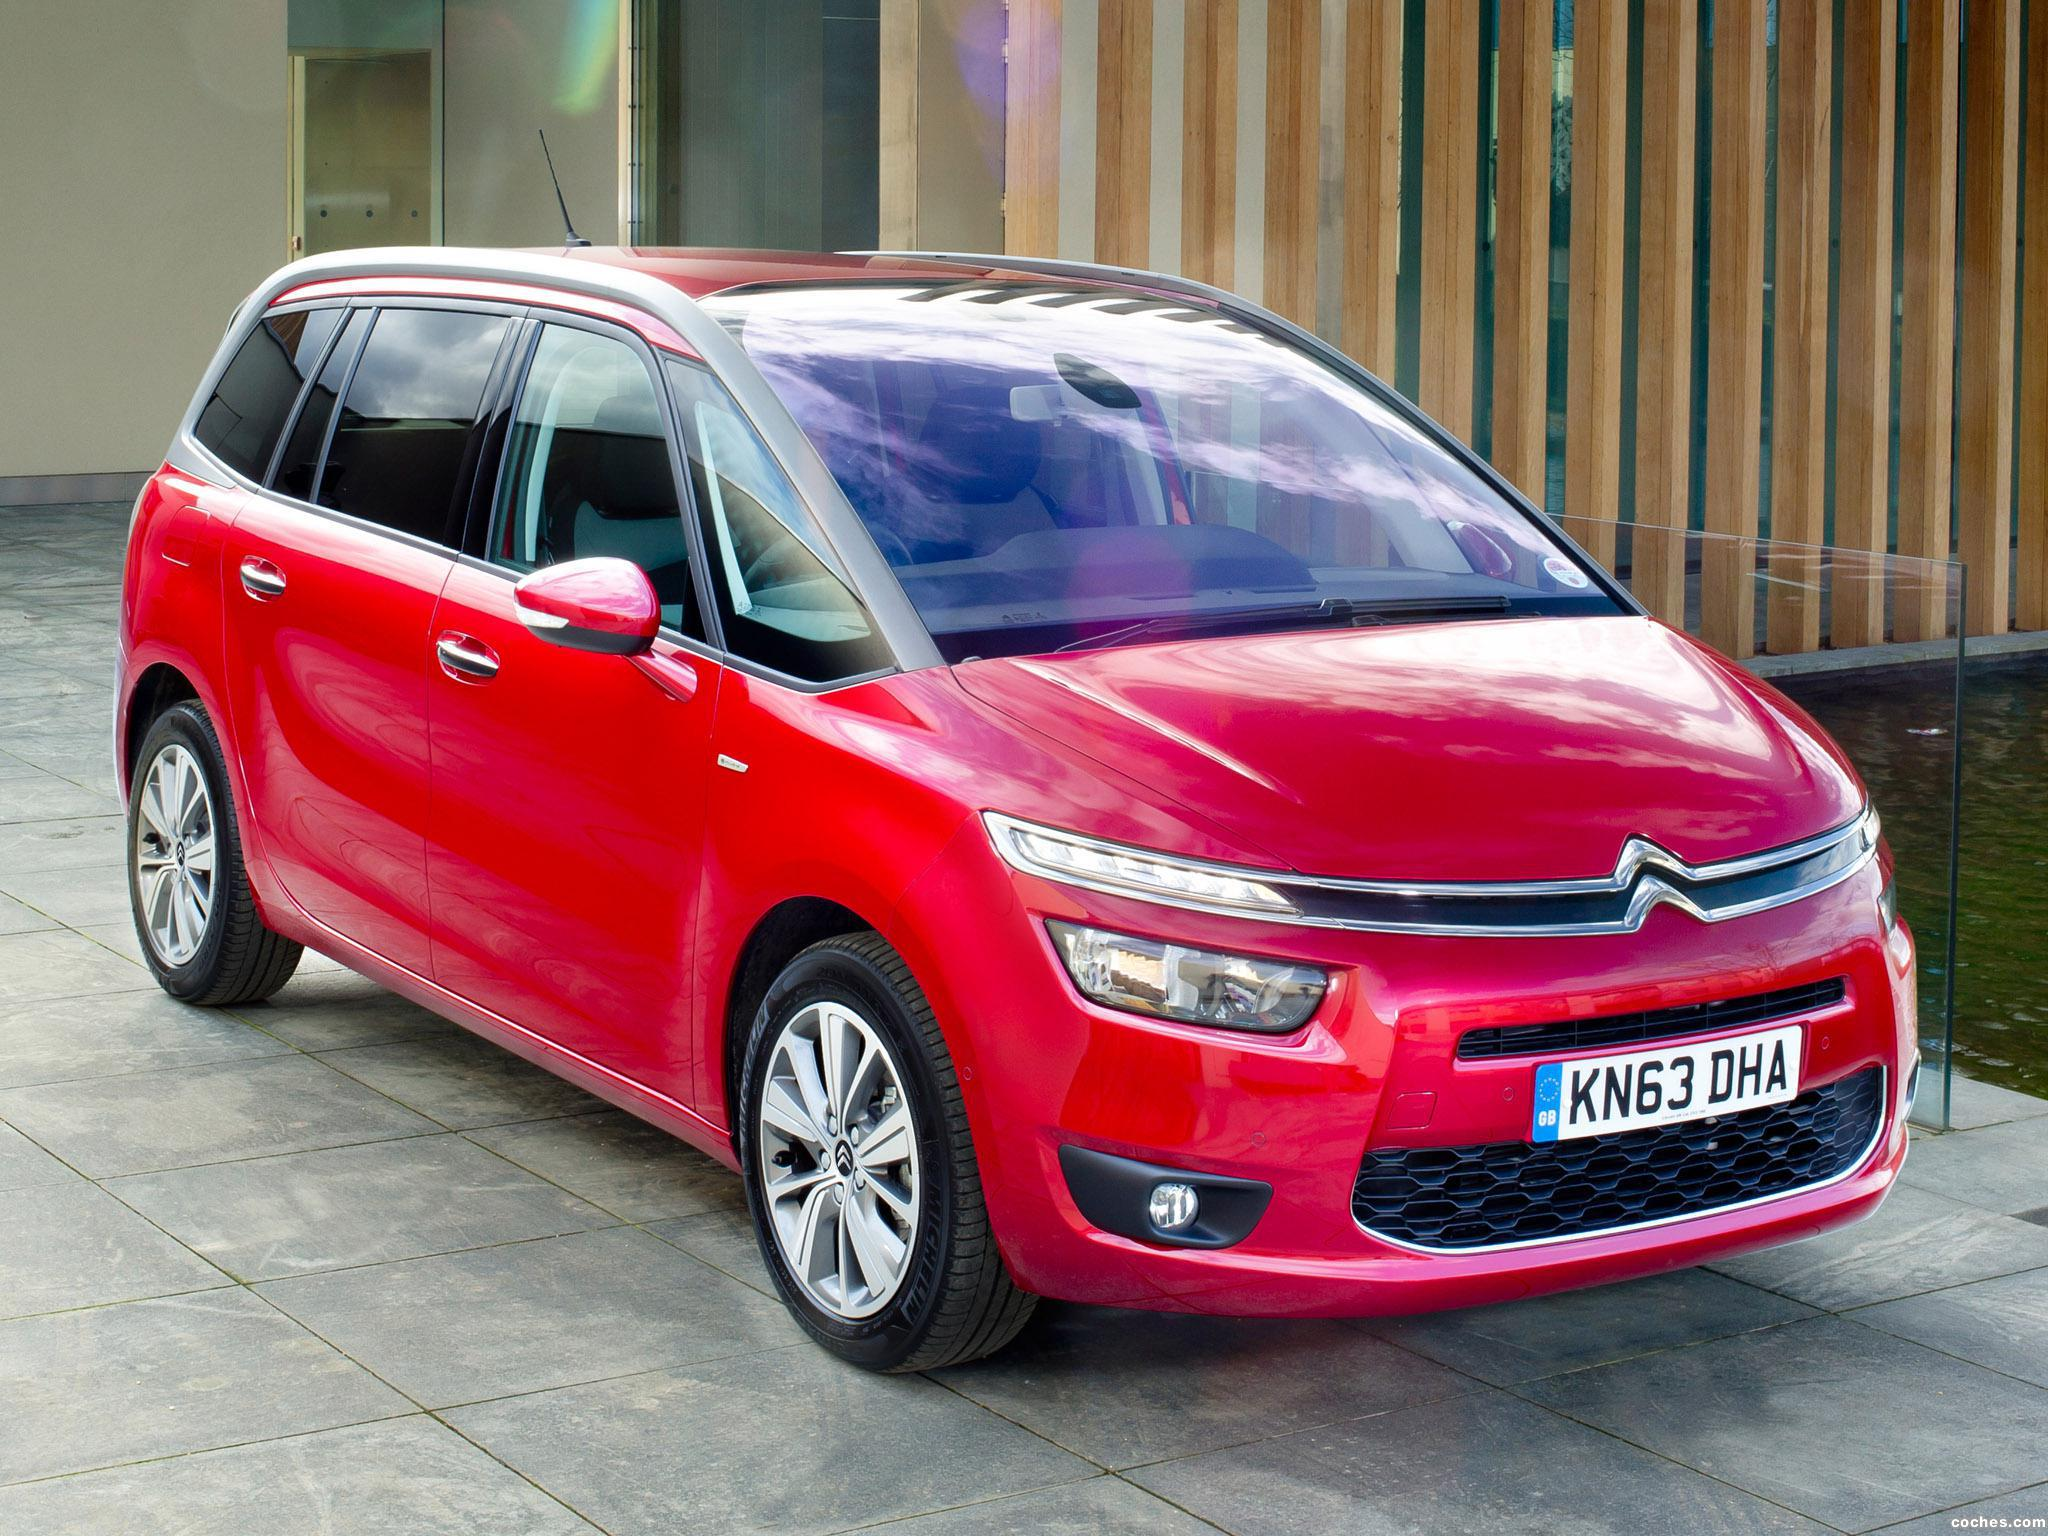 fotos de citroen c4 grand picasso uk 2014. Black Bedroom Furniture Sets. Home Design Ideas